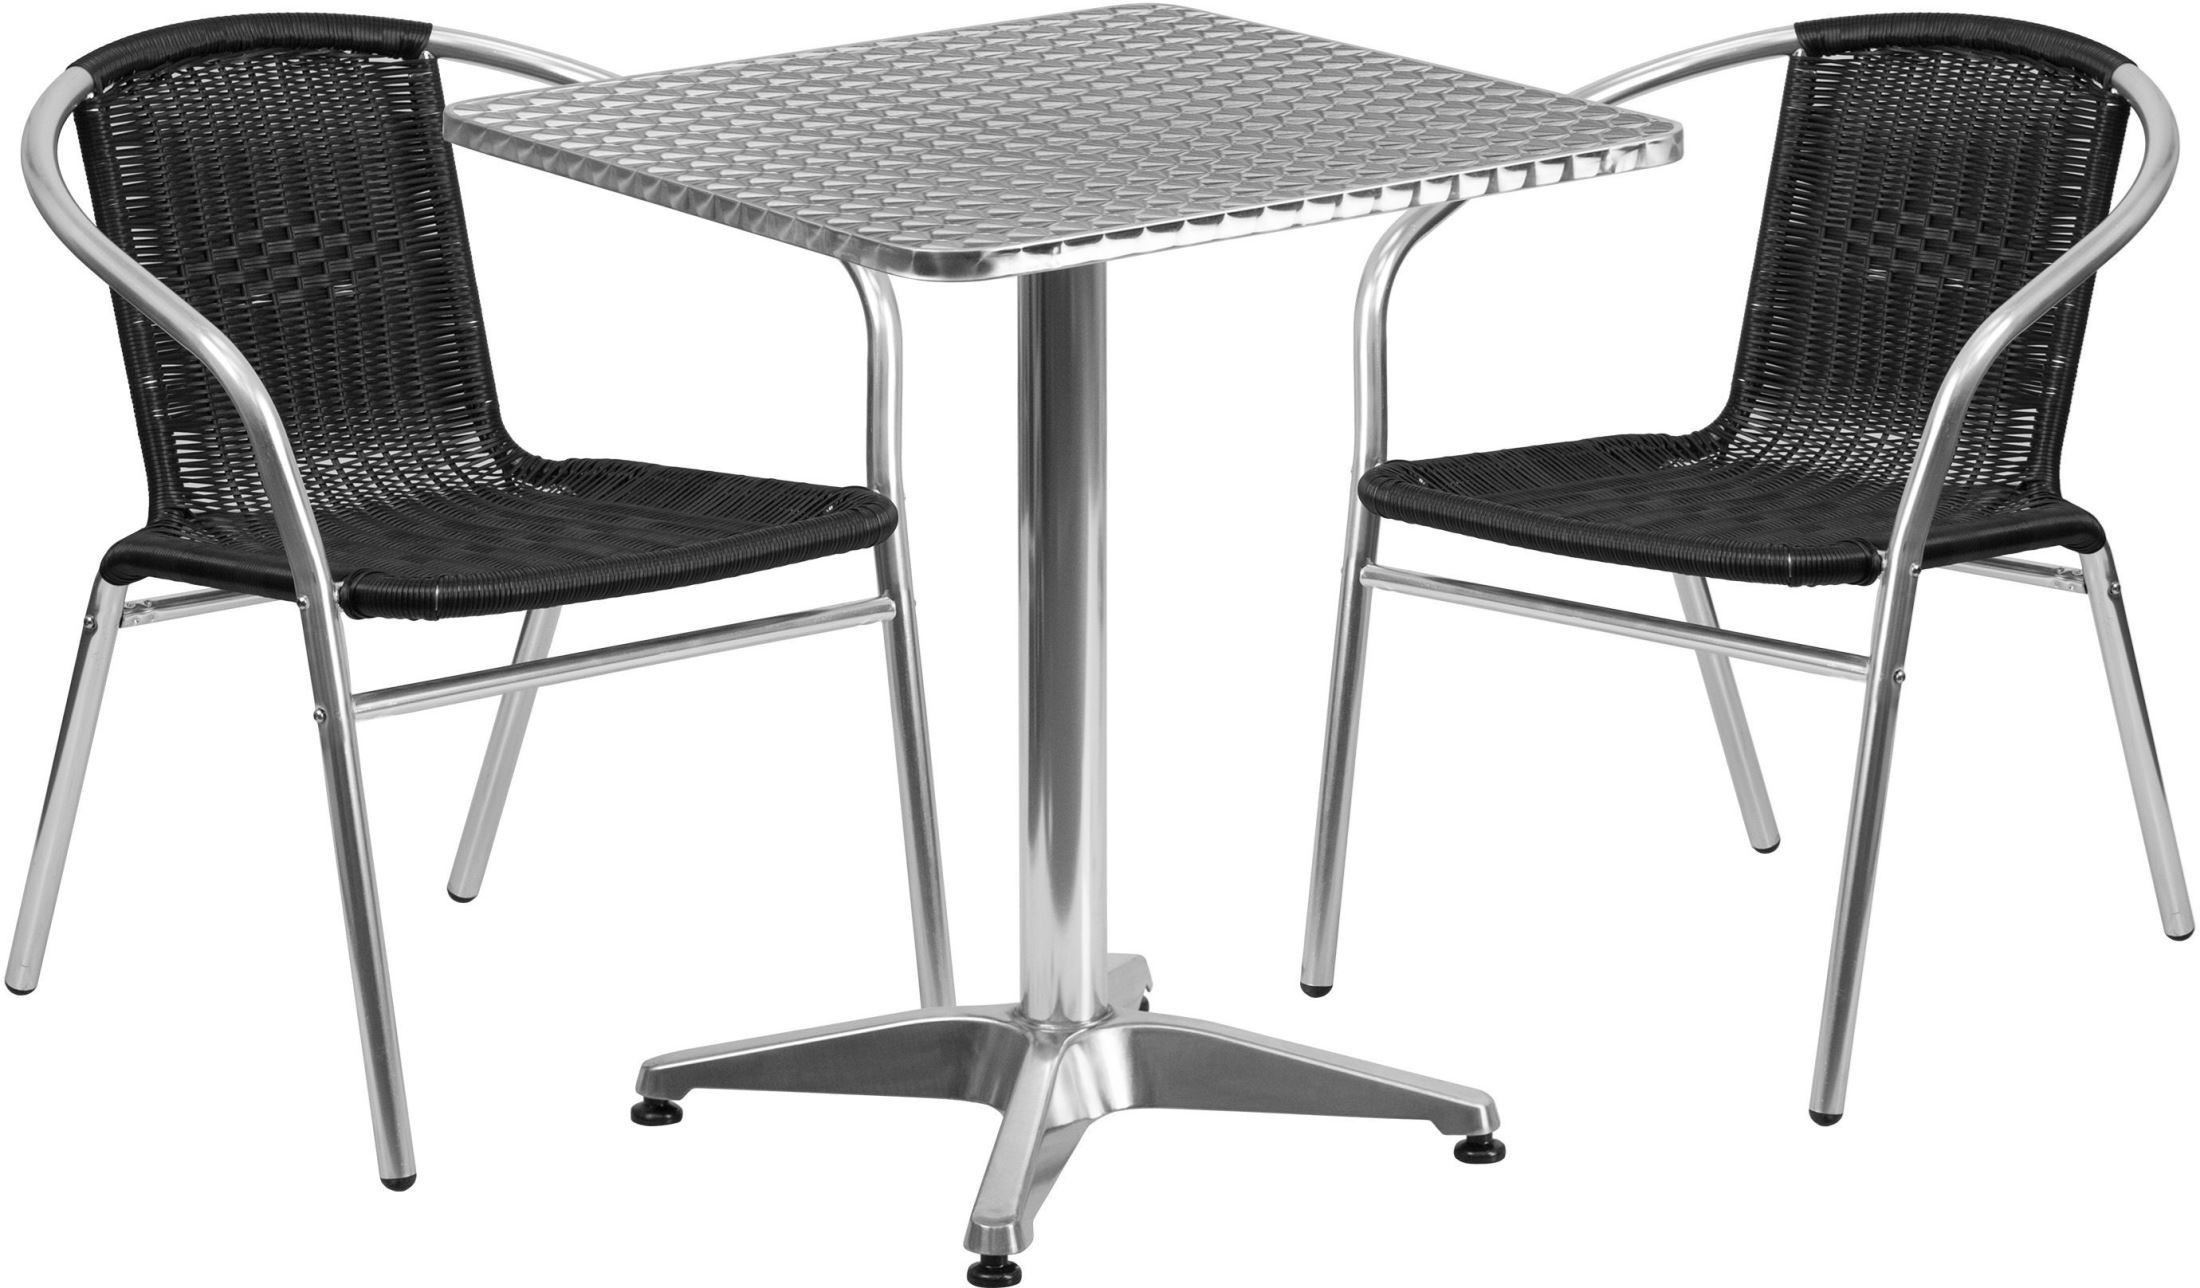 23 5 Square Aluminum Indoor Outdoor Table With 2 Black